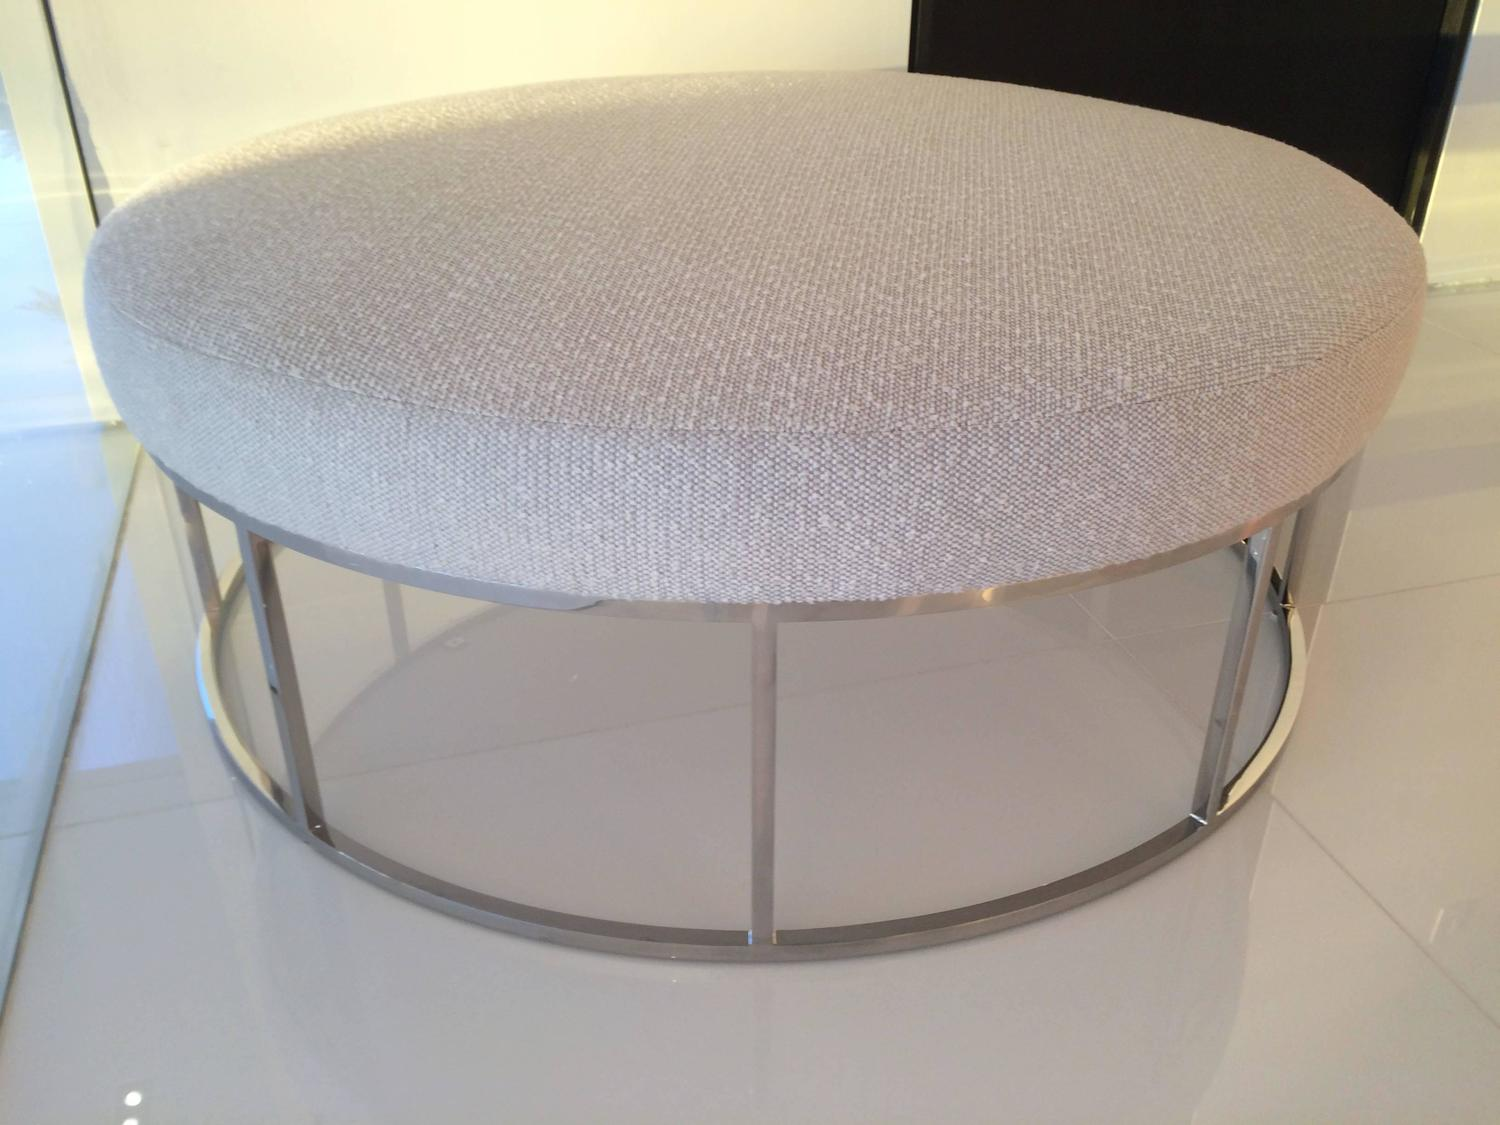 stunning steel chair attacks events by designer covers custom designed round ottoman with stainless